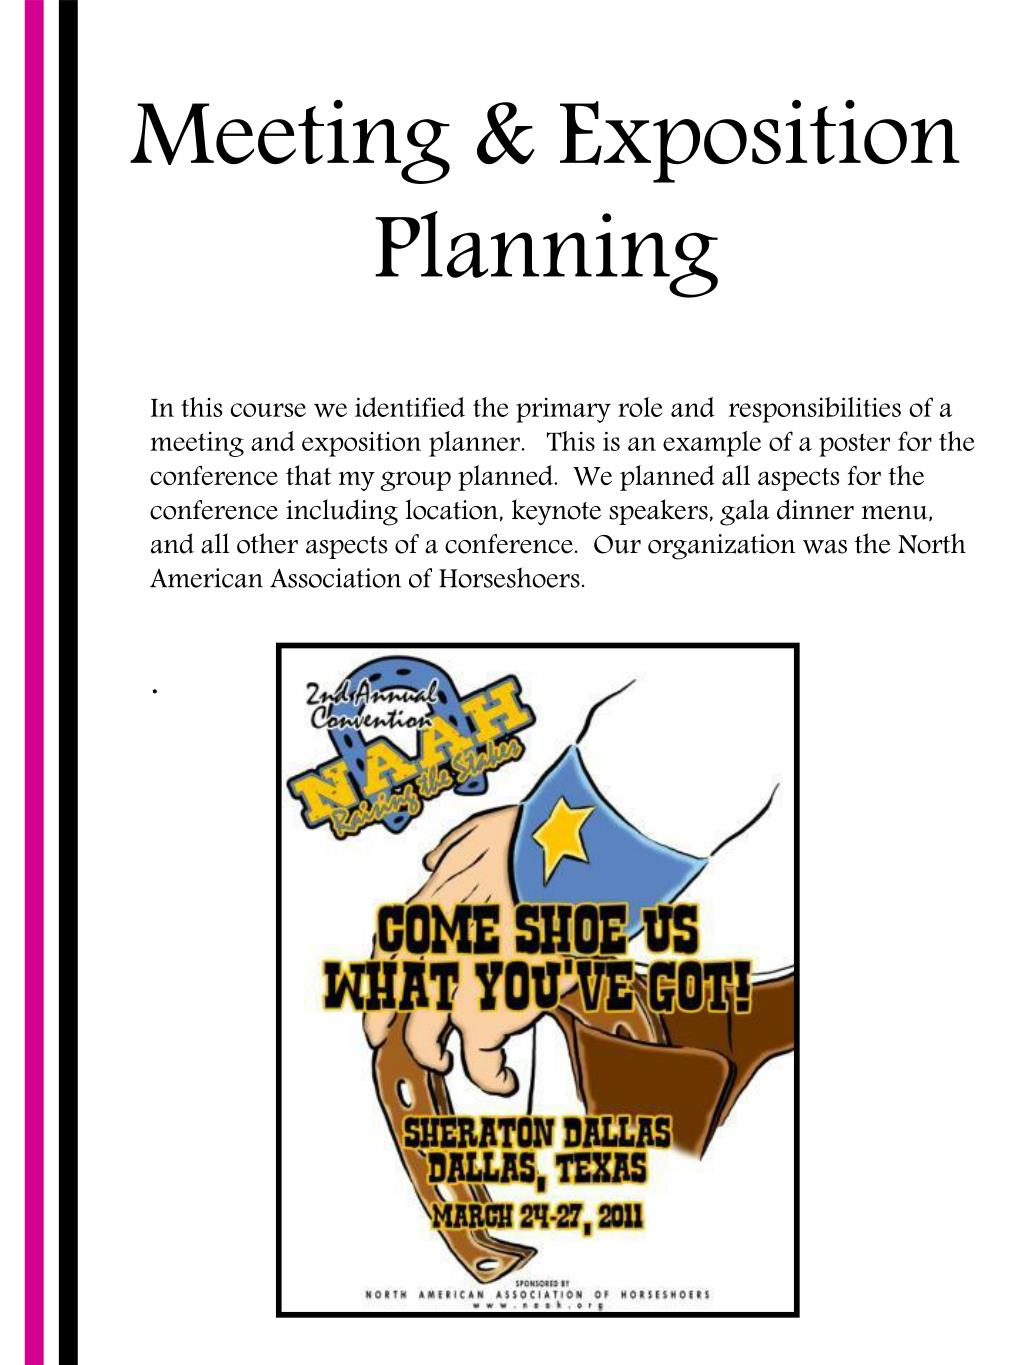 Meeting & Exposition Planning